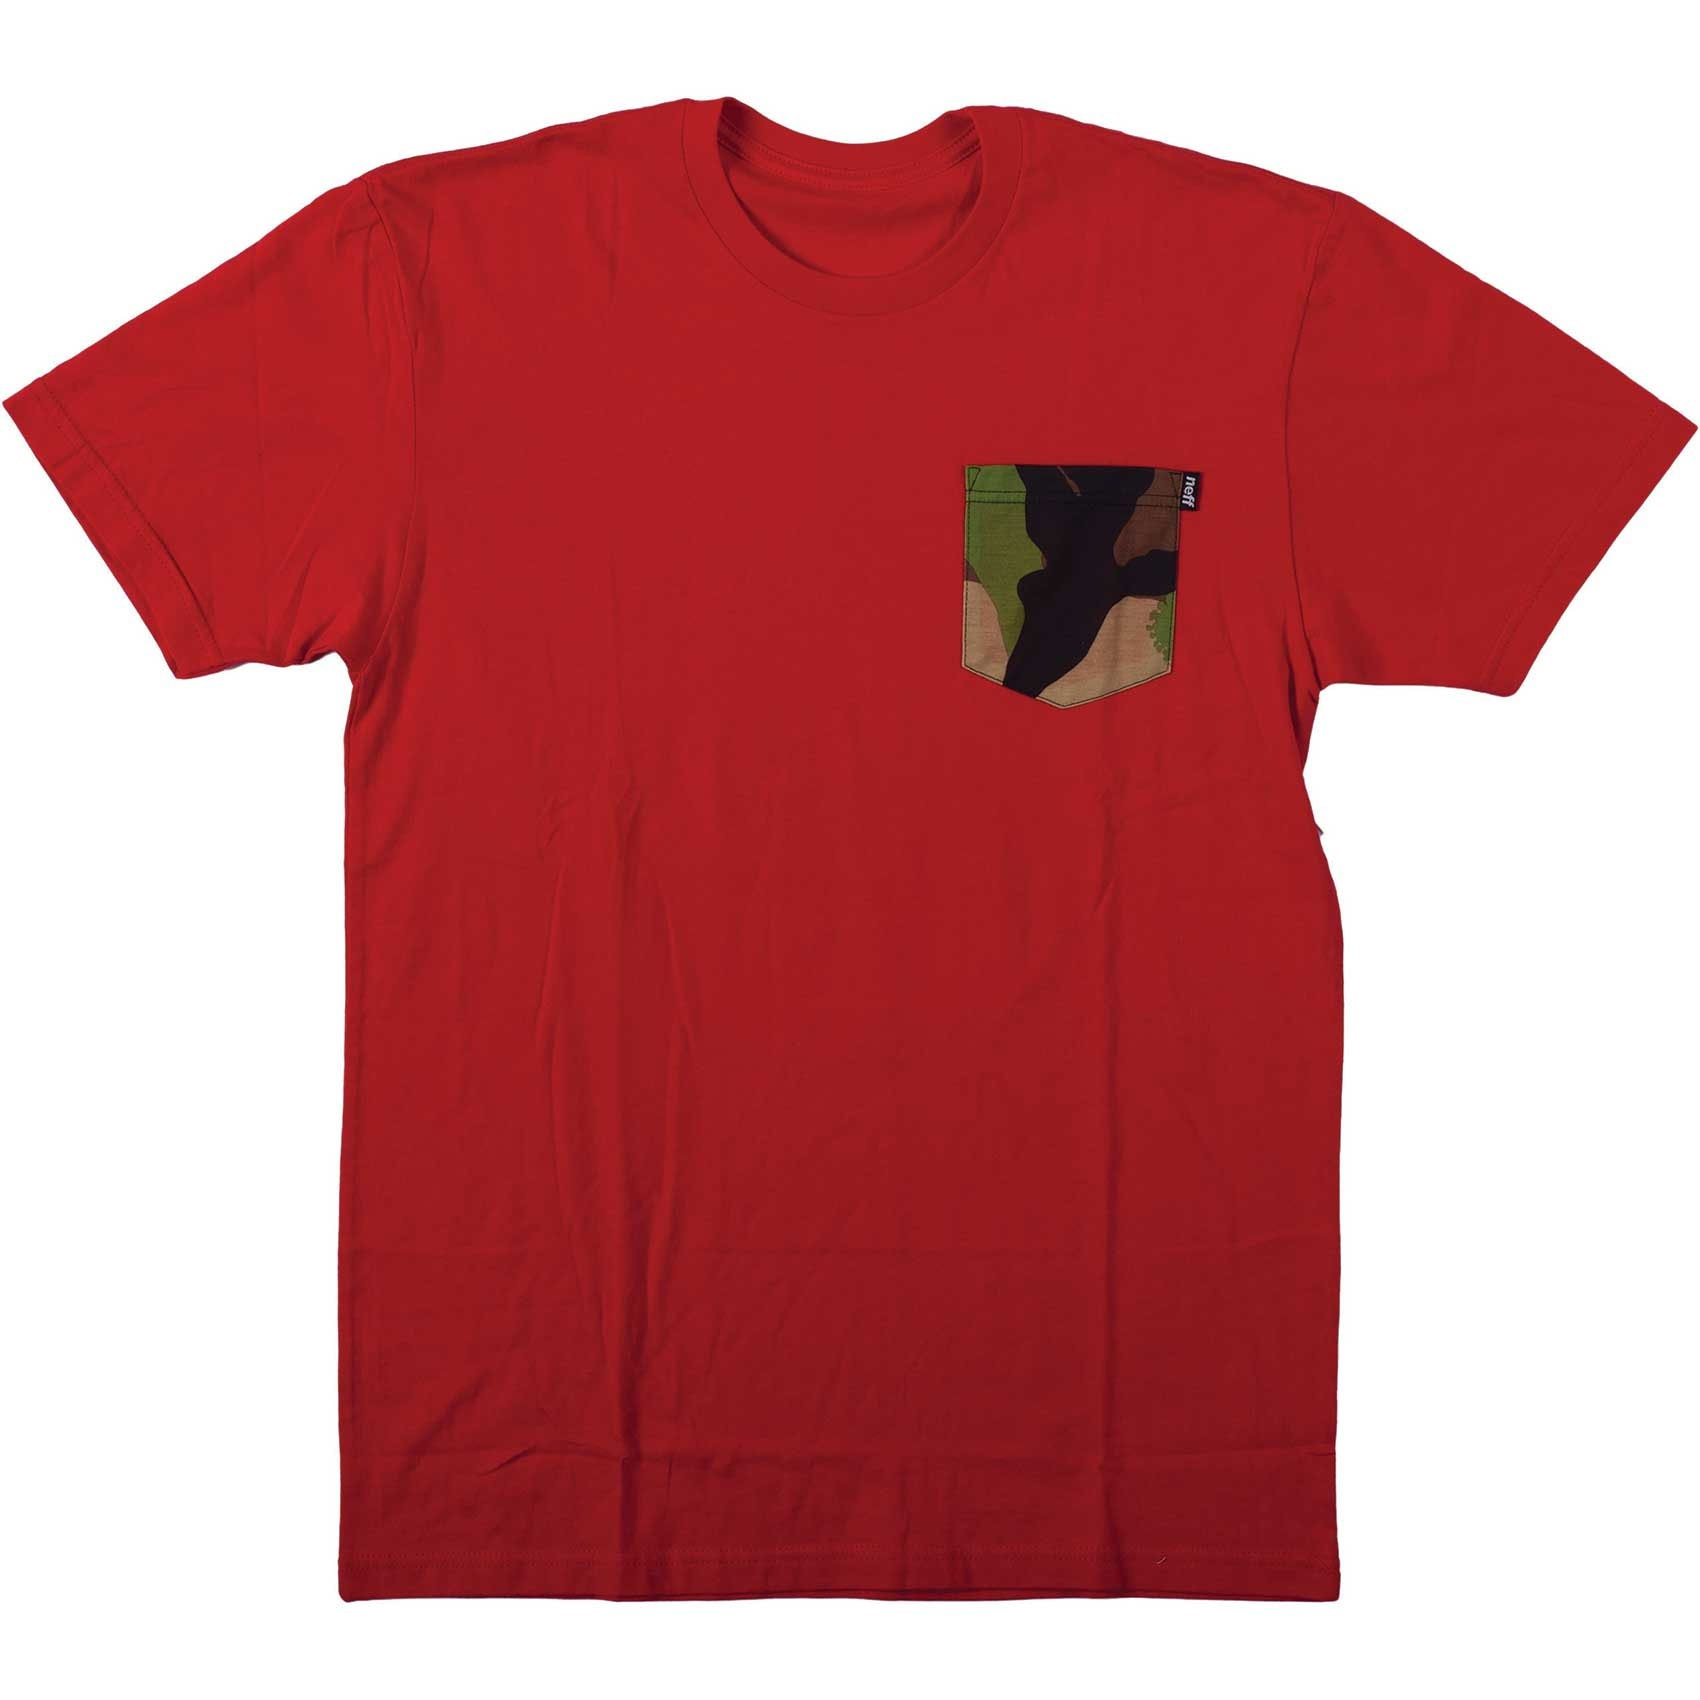 Neff Nifty Premium Pocket T-Shirt - Red Heather/Camo